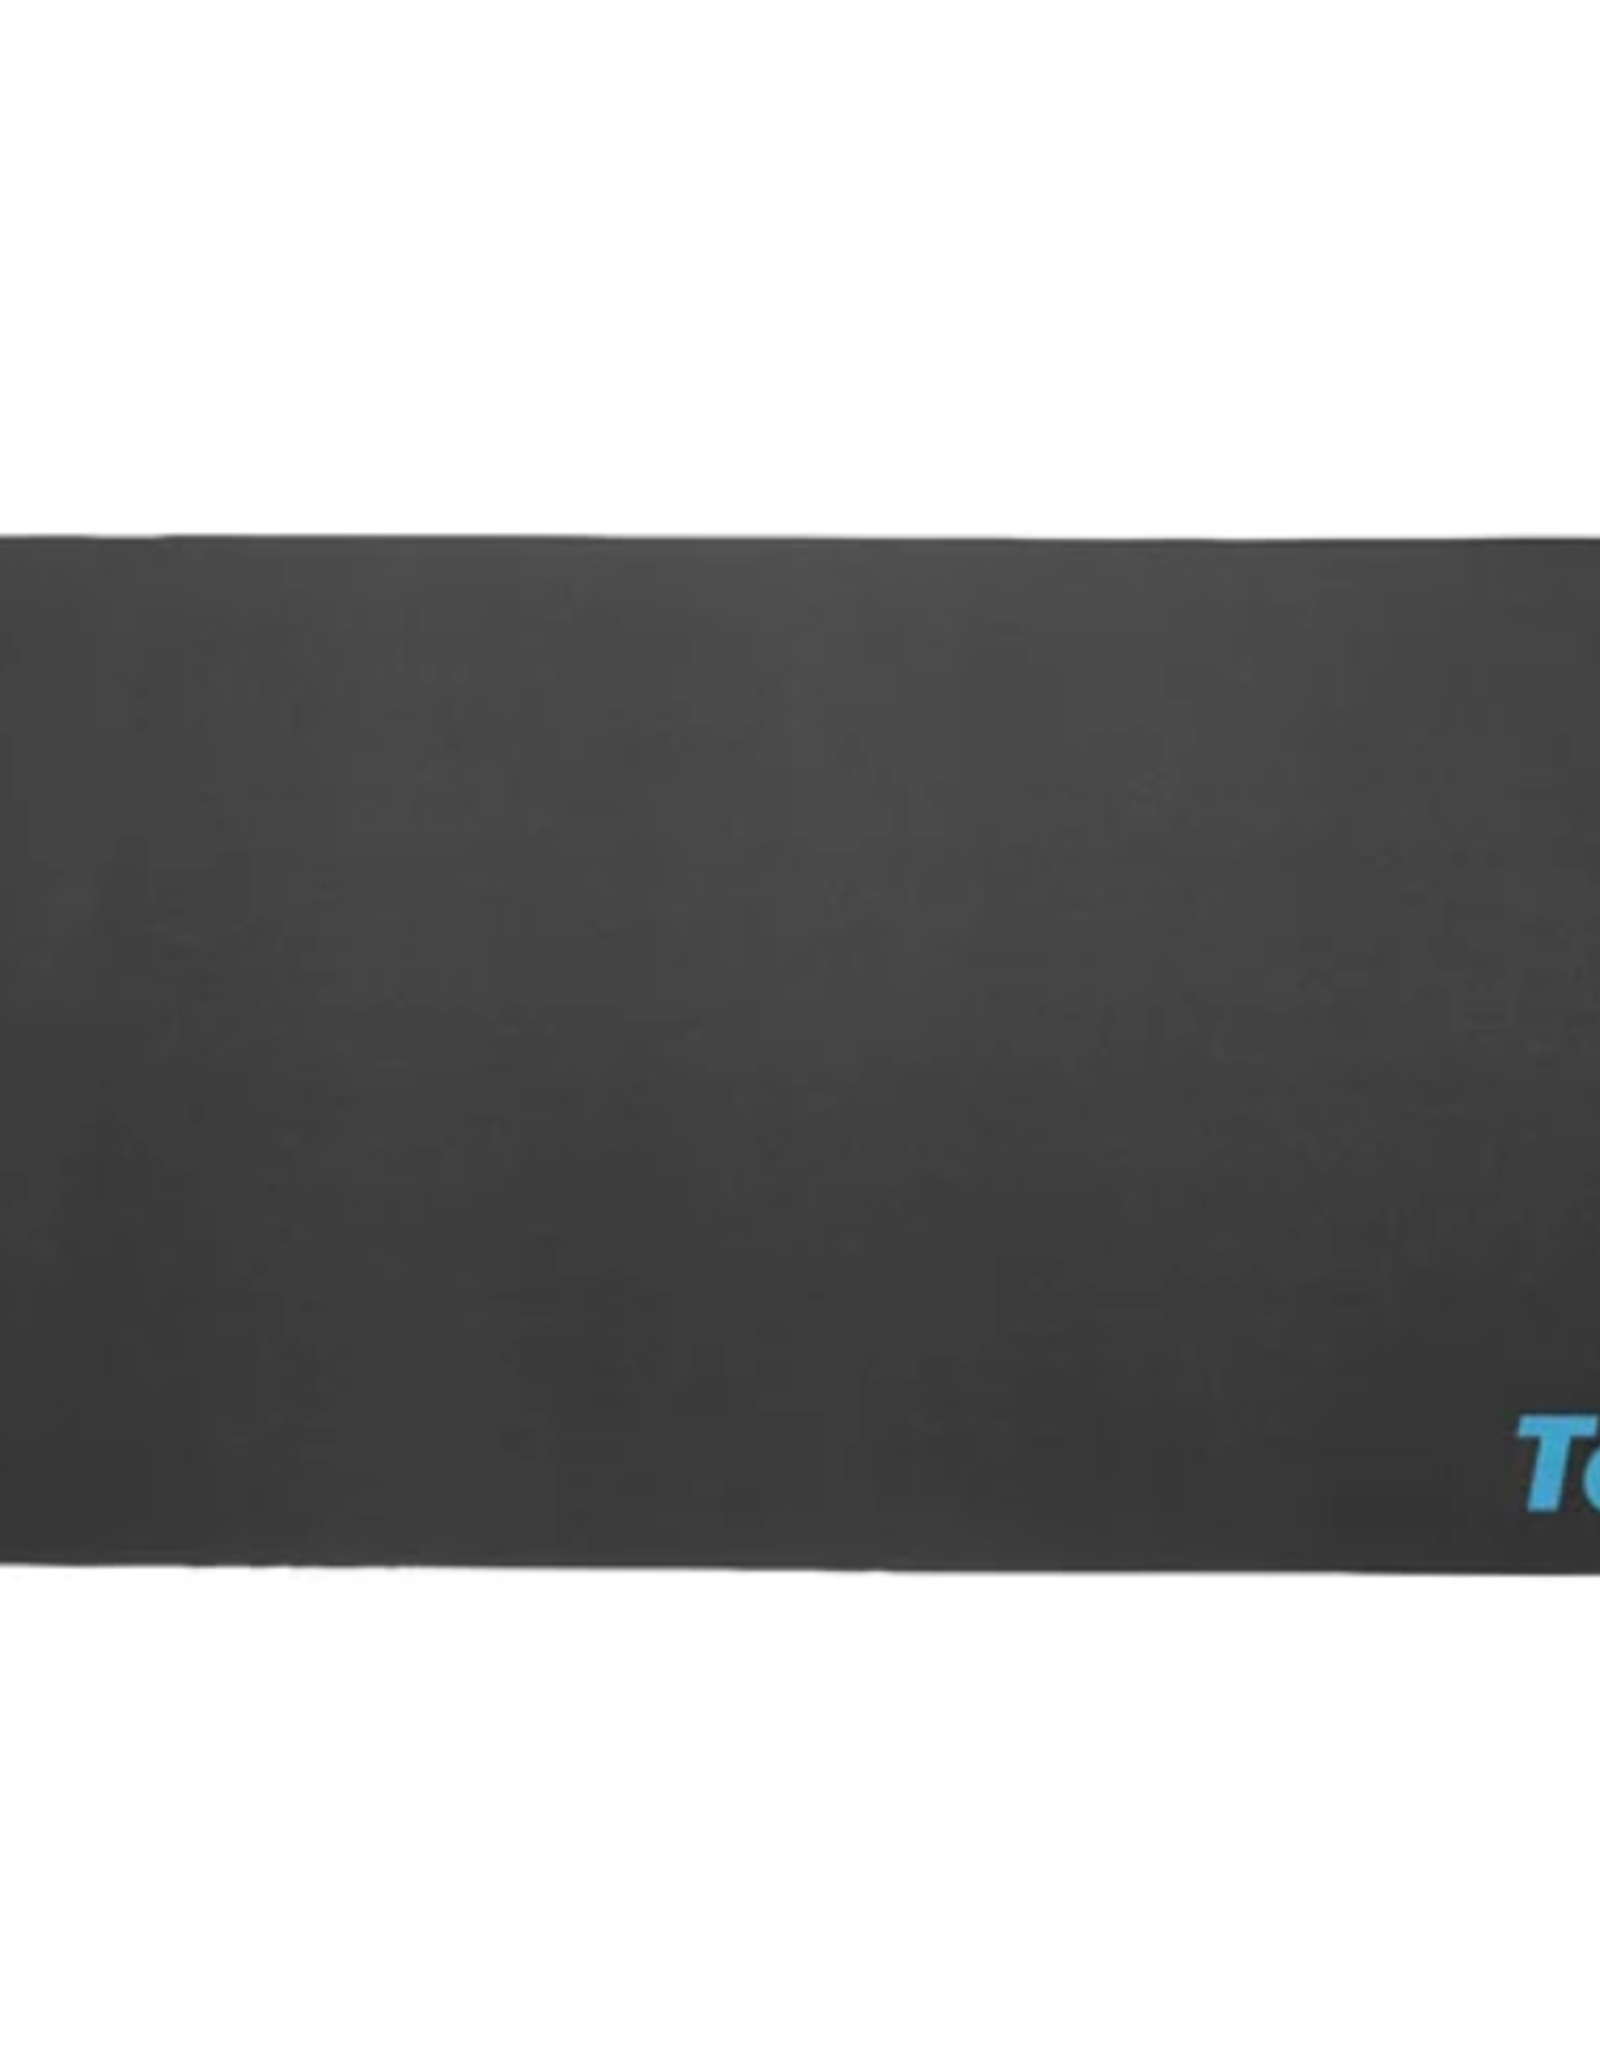 Tacx Tacx, Rollable Trainer Mat, T2918